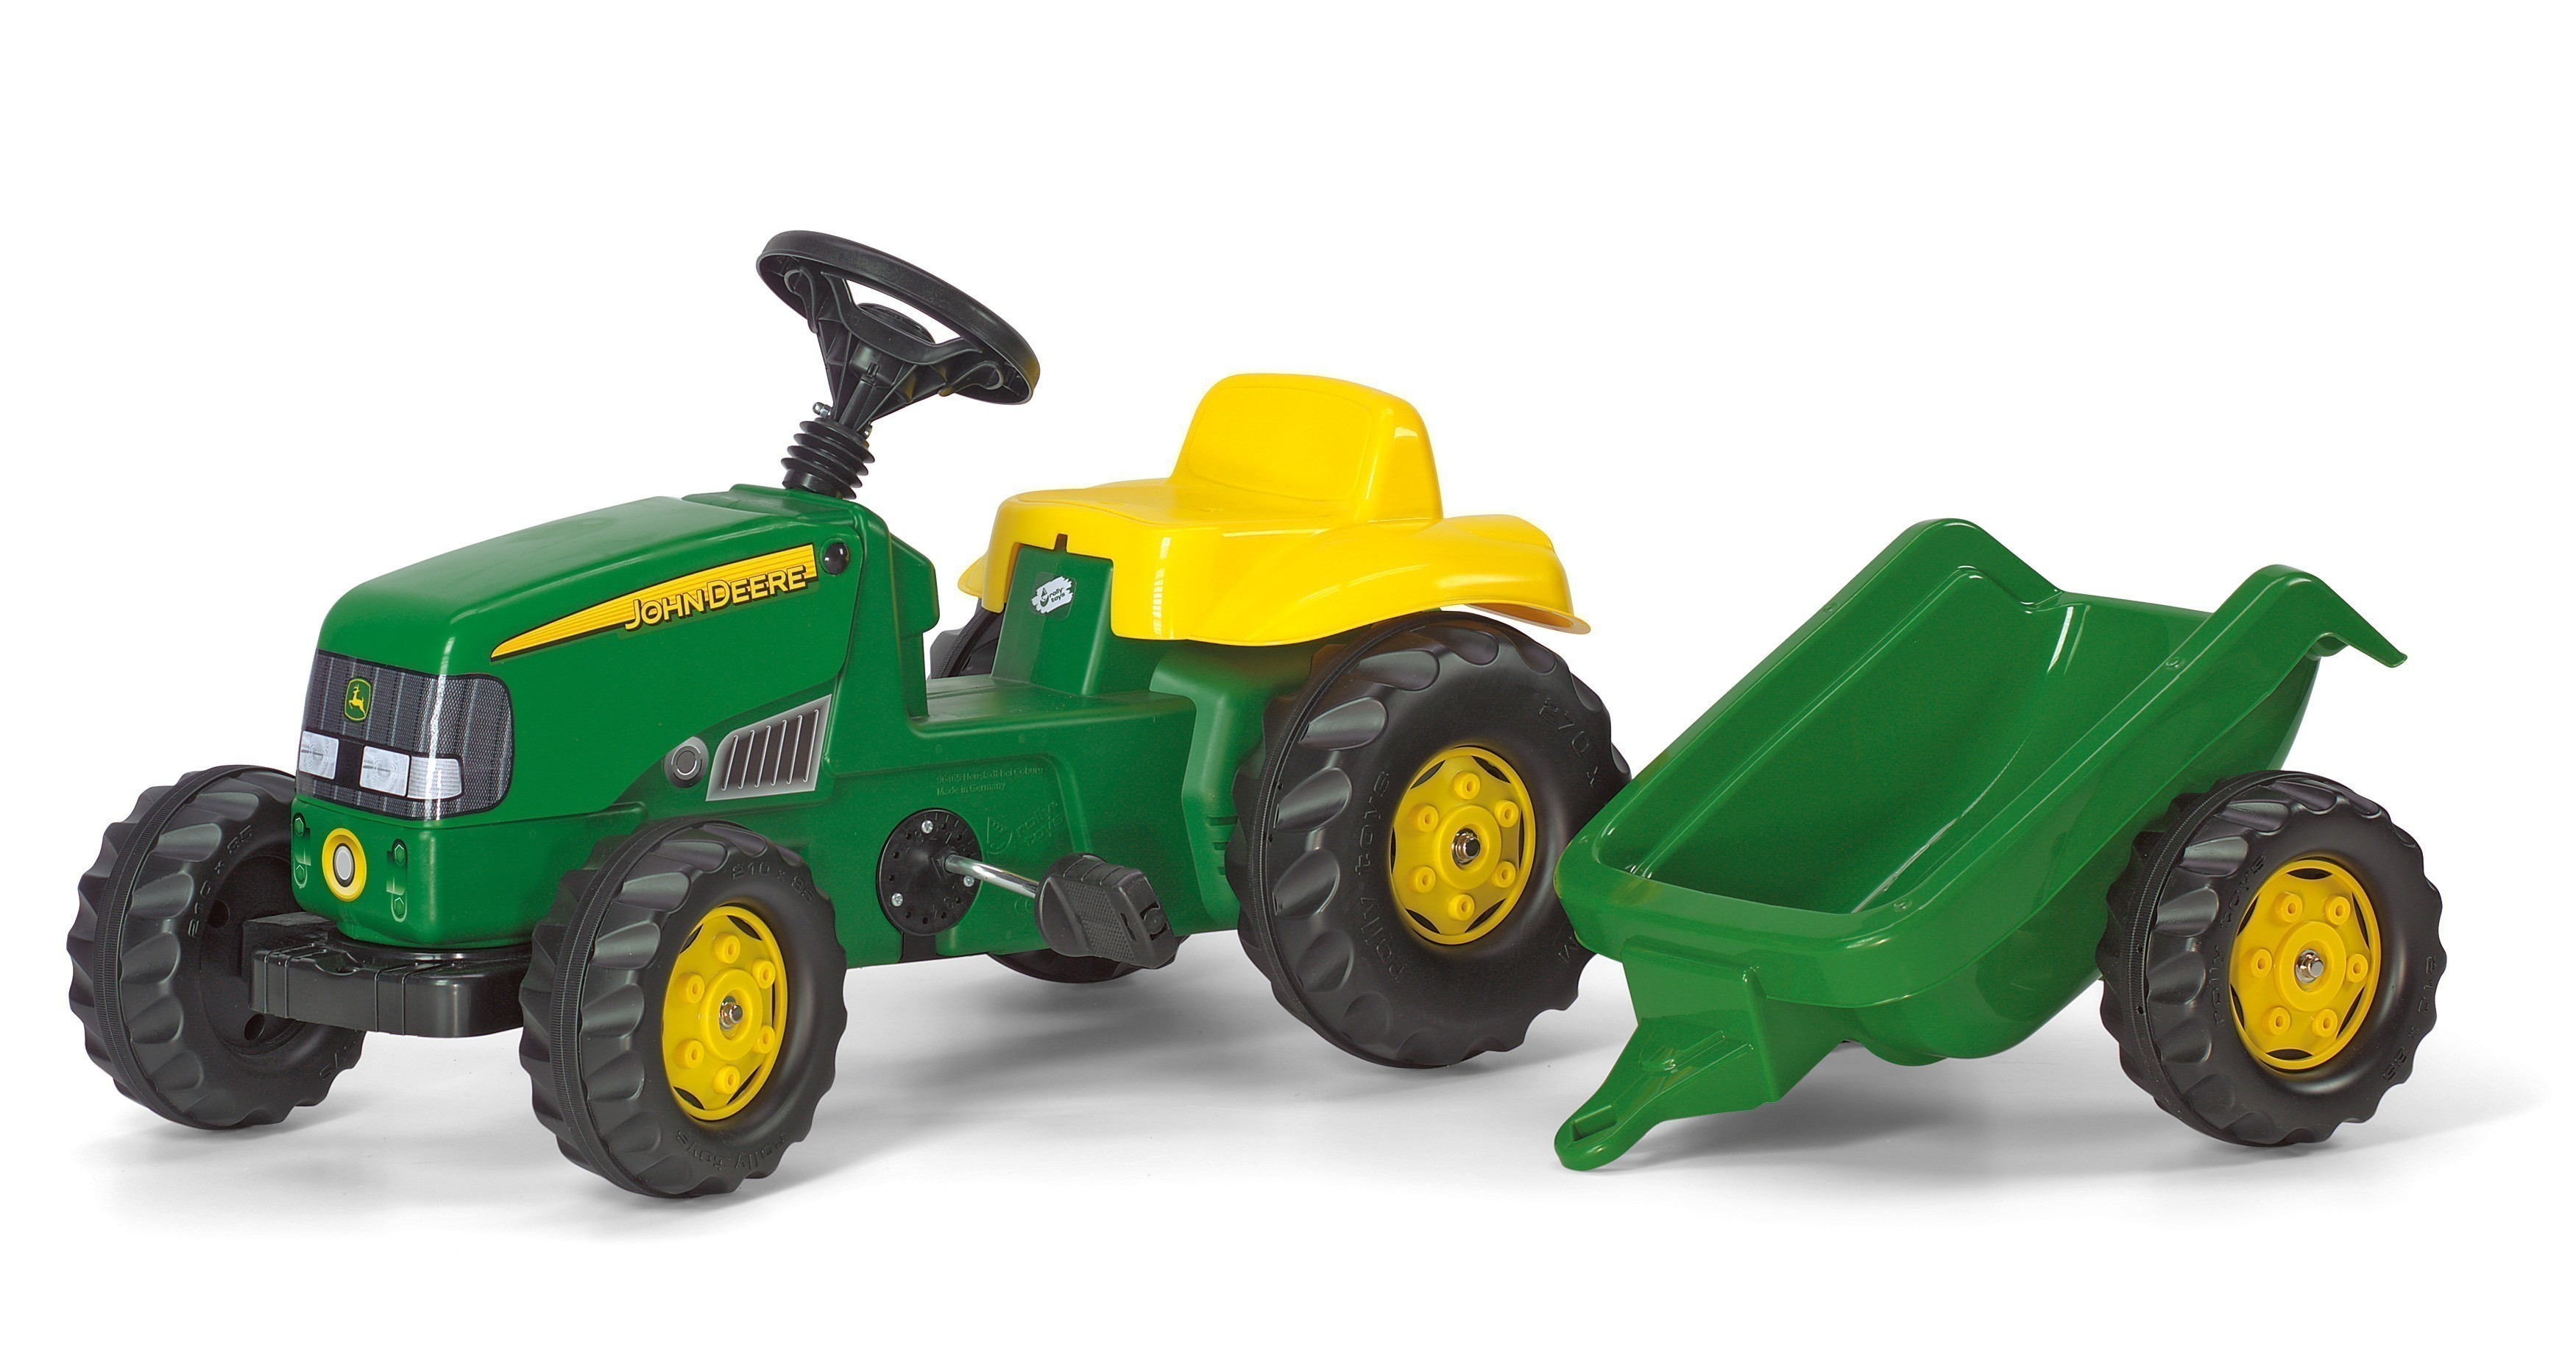 trettraktor rolly kid john deere mit anh nger rolly toys. Black Bedroom Furniture Sets. Home Design Ideas